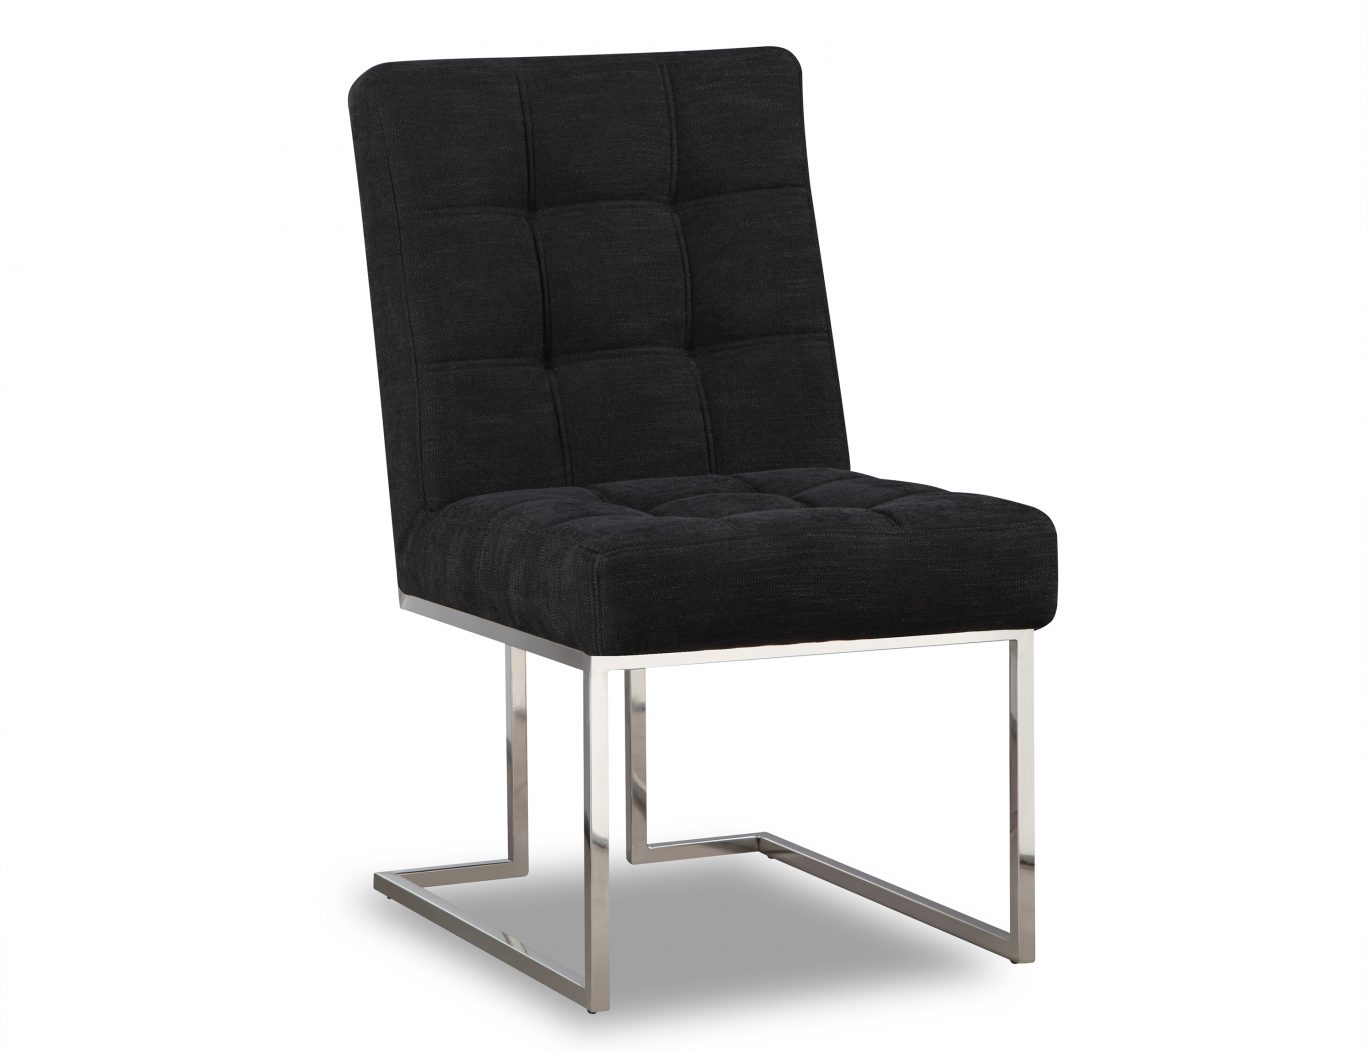 Maria Black Dining Chair